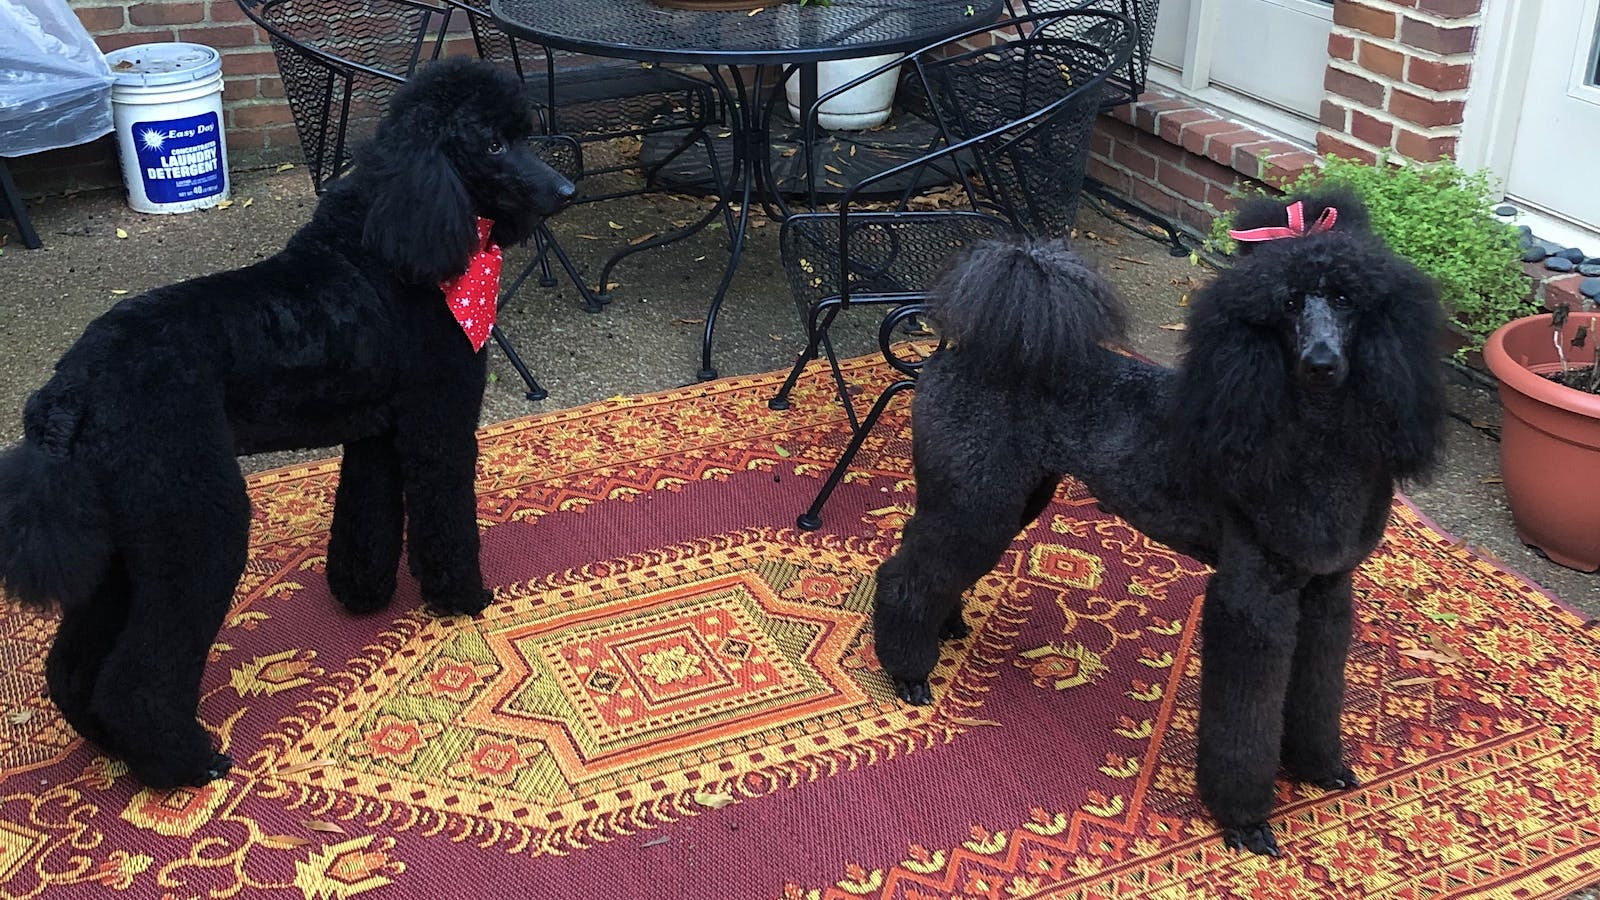 Bailey and Khaleesi the Standard Poodles